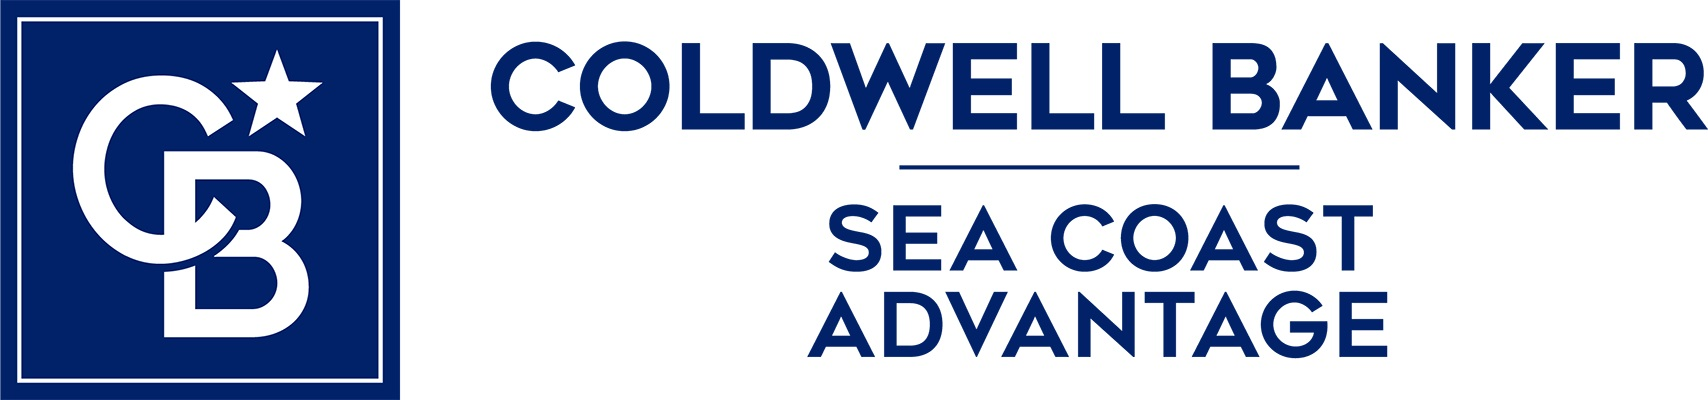 Wanda Mercer - Coldwell Banker Sea Coast Advantage Realty Logo